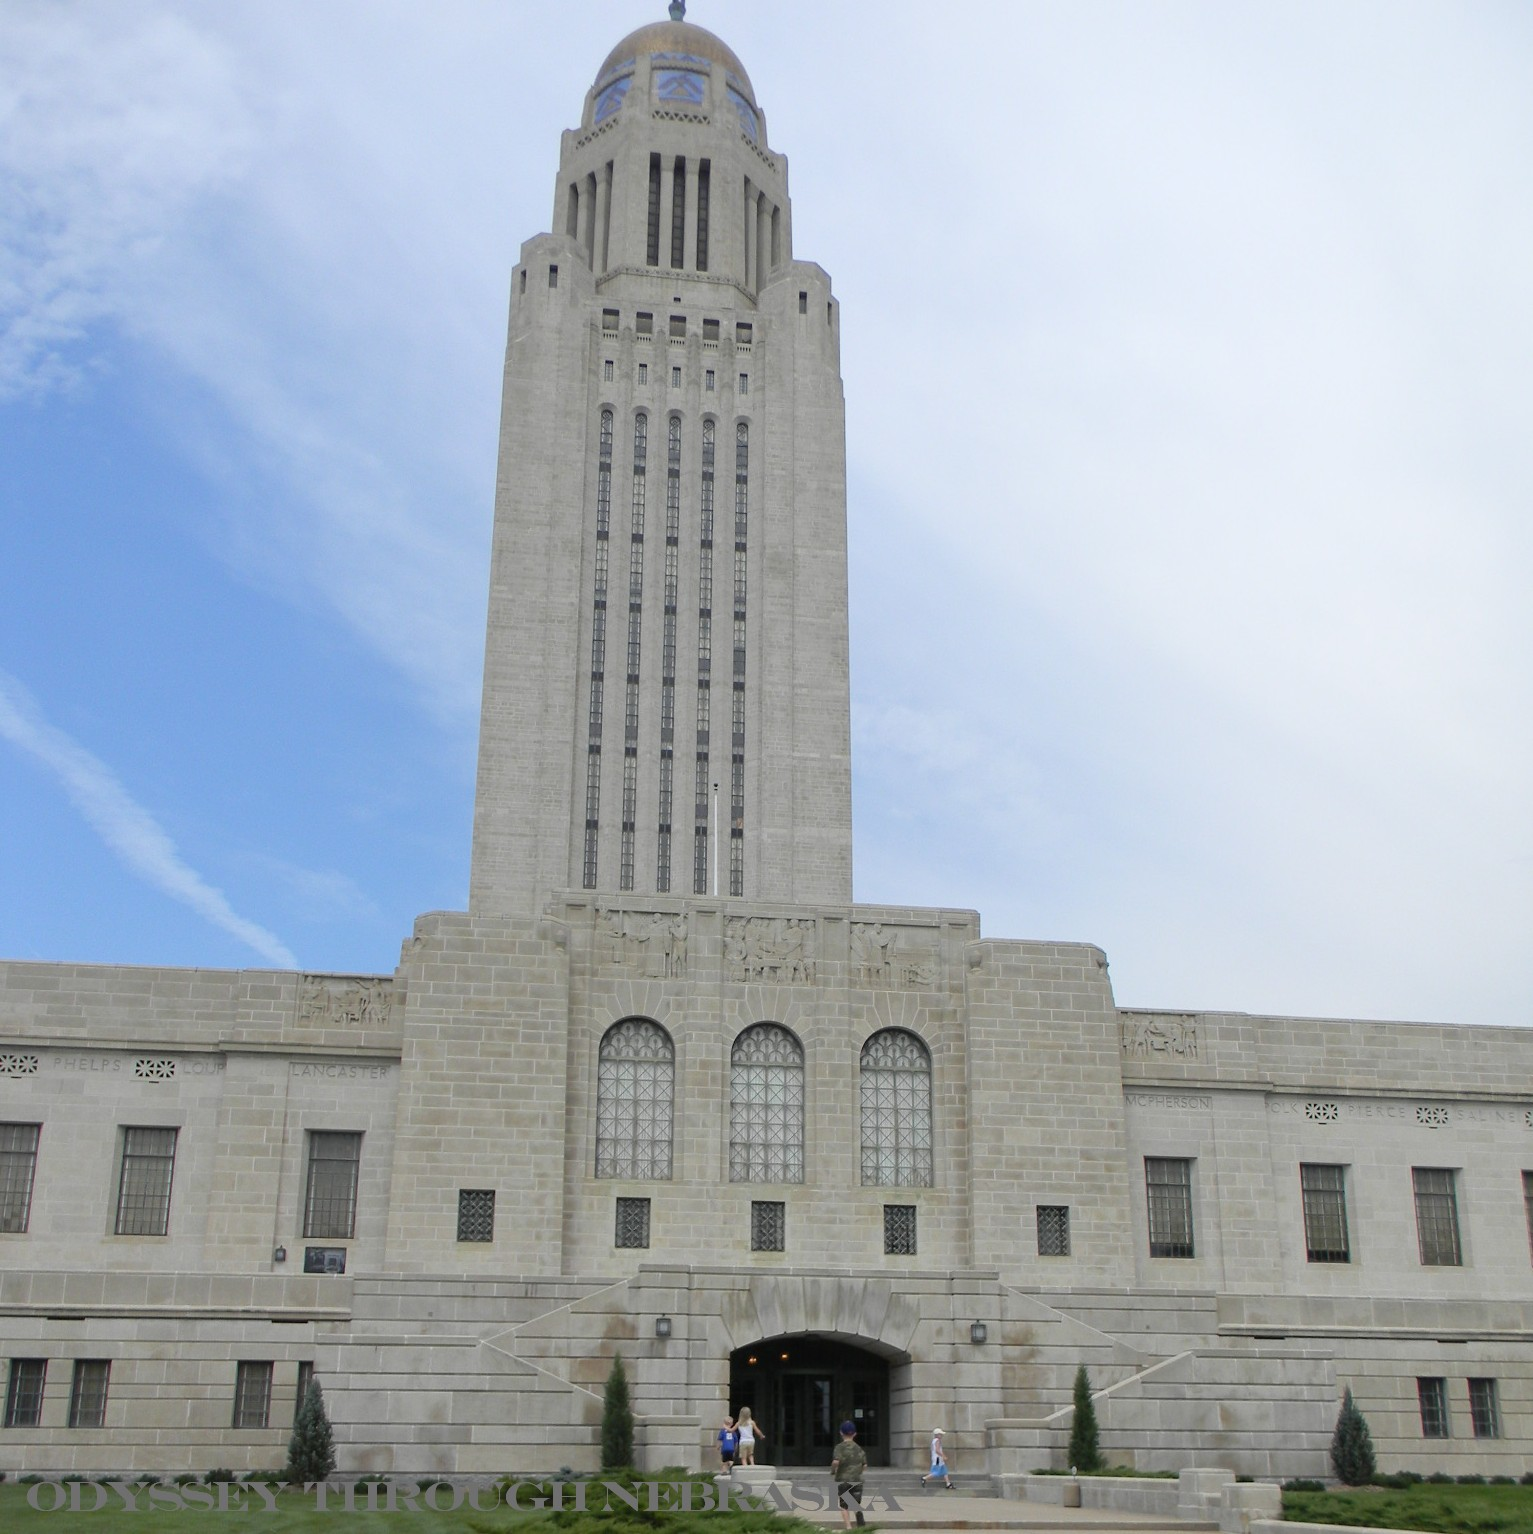 The Nebraska Capitol is a masterpiece